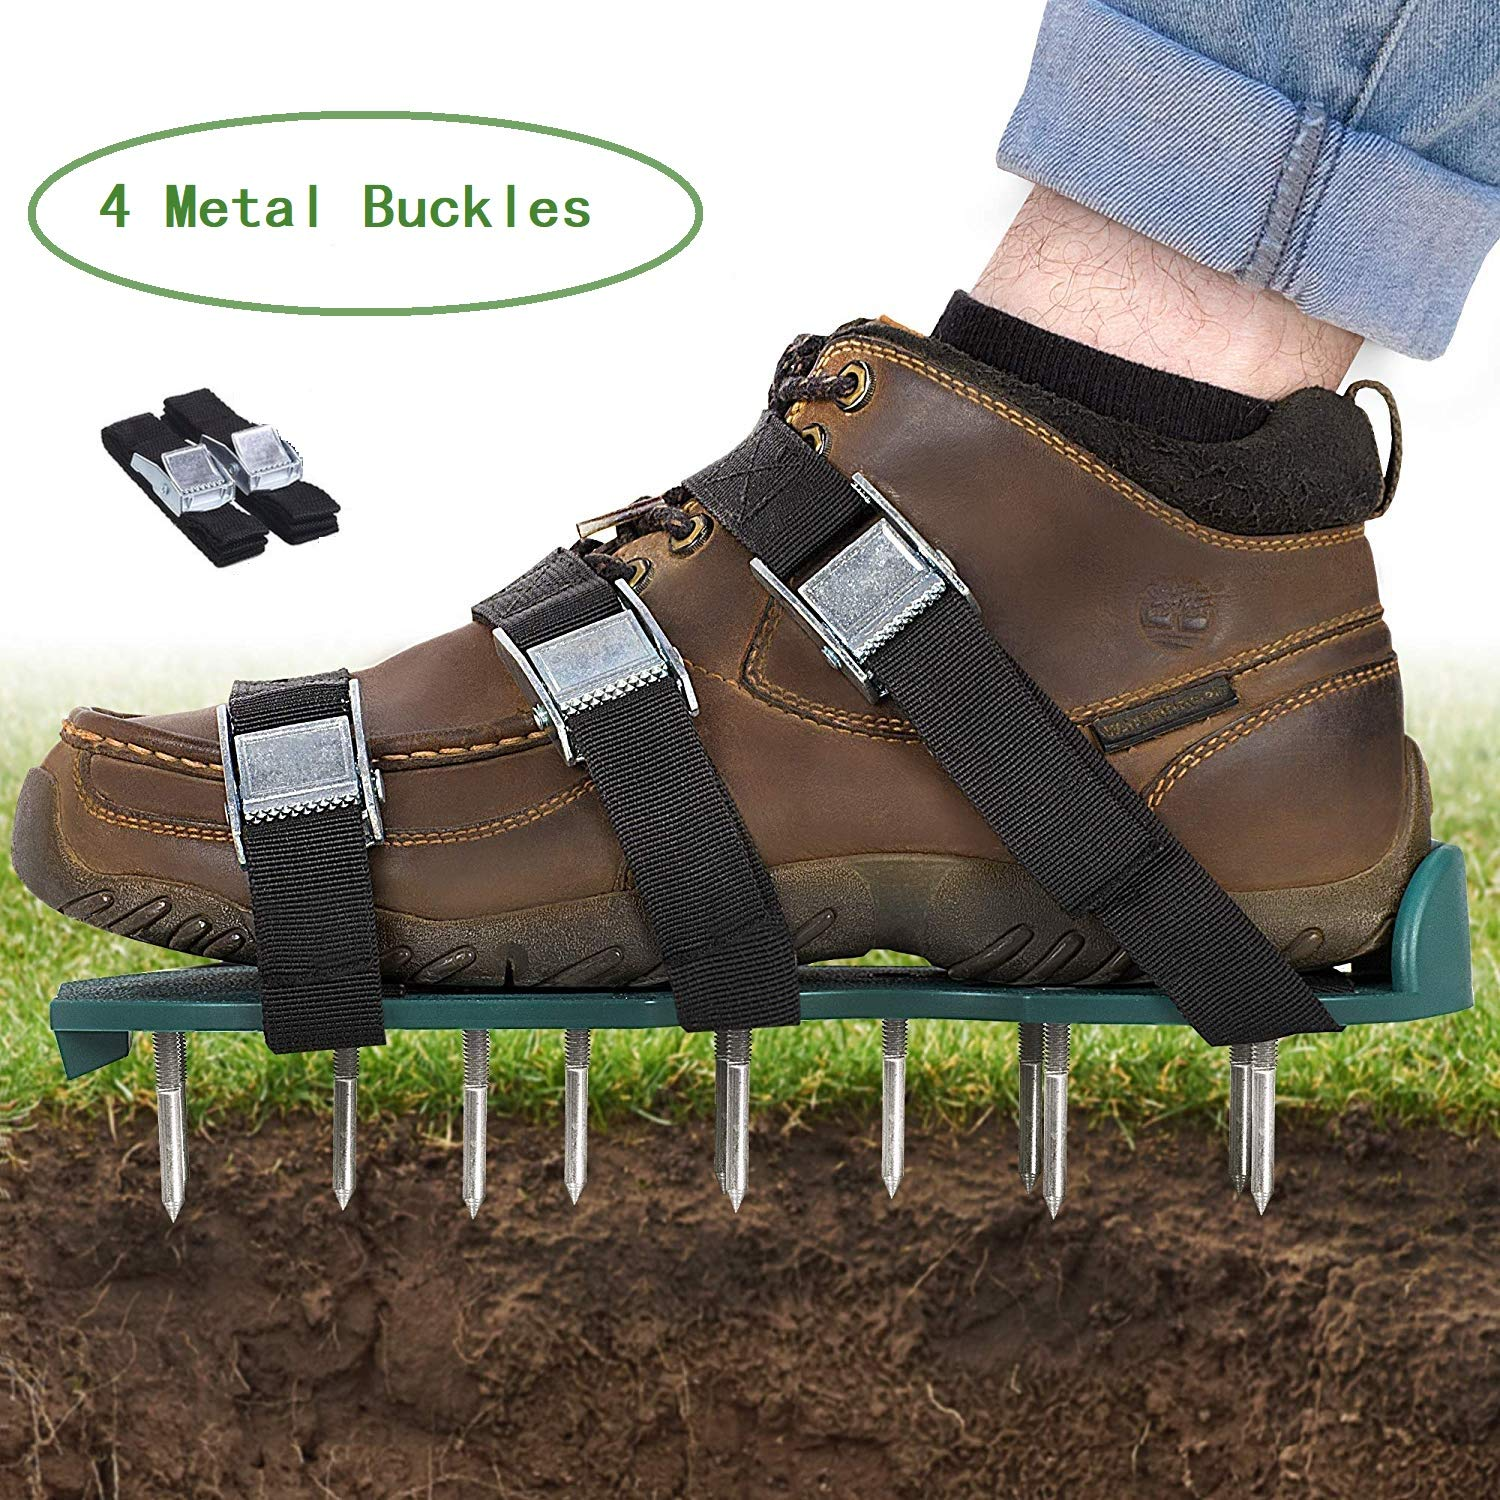 Oceanpax Lawn Aerator Spike Shoes 26 Spikes and 4 Adjustable Straps Ready for aerating Your Yard, Root & Grass by Oceanpax (Image #1)